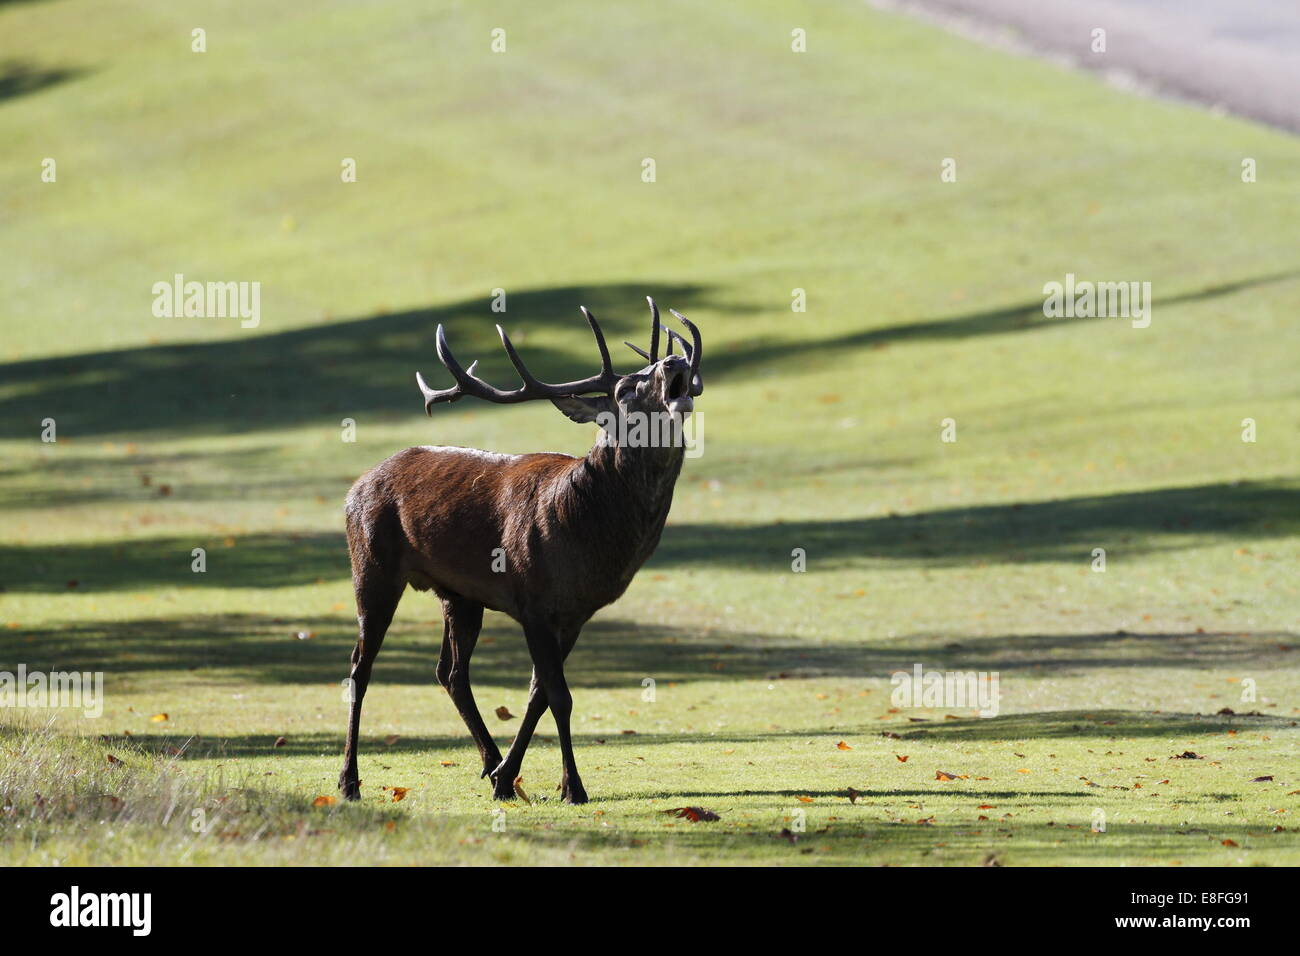 Windsor Great Park, Berkshire, UK. 7th October, 2014. UK Weather: Red deer stag bellowing during the annual deer rut in Windsor Great Park, Berkshire, England, UK. Credit:  Ed Brown/Alamy Live News Stock Photo